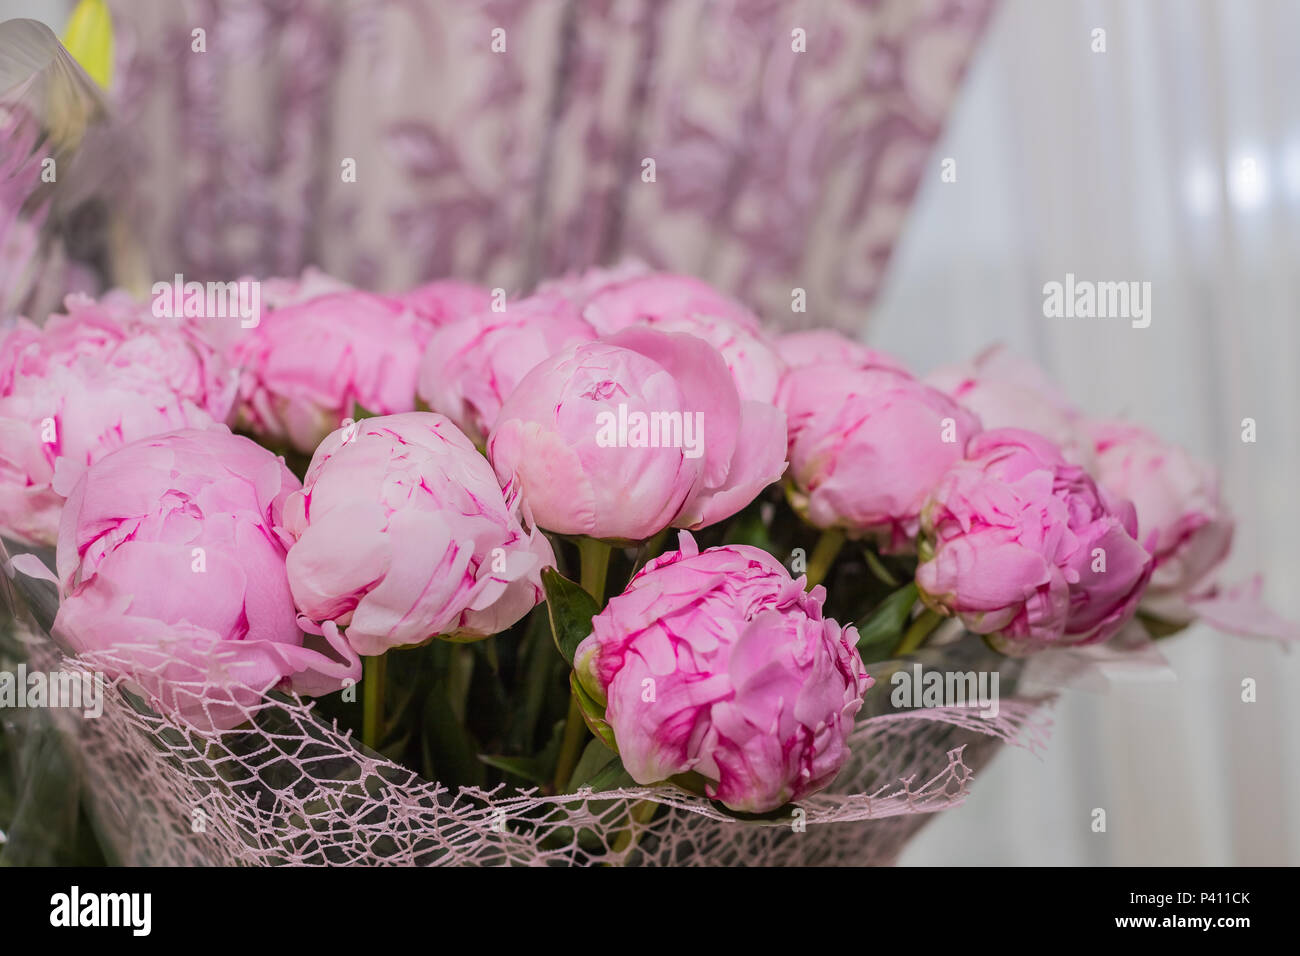 Big bouquet of pink peonies on blurred background copy space big bouquet of pink peonies on blurred background copy spaceautiful flowers bouquet holiday background greeting cardhappy birthday valentines day izmirmasajfo